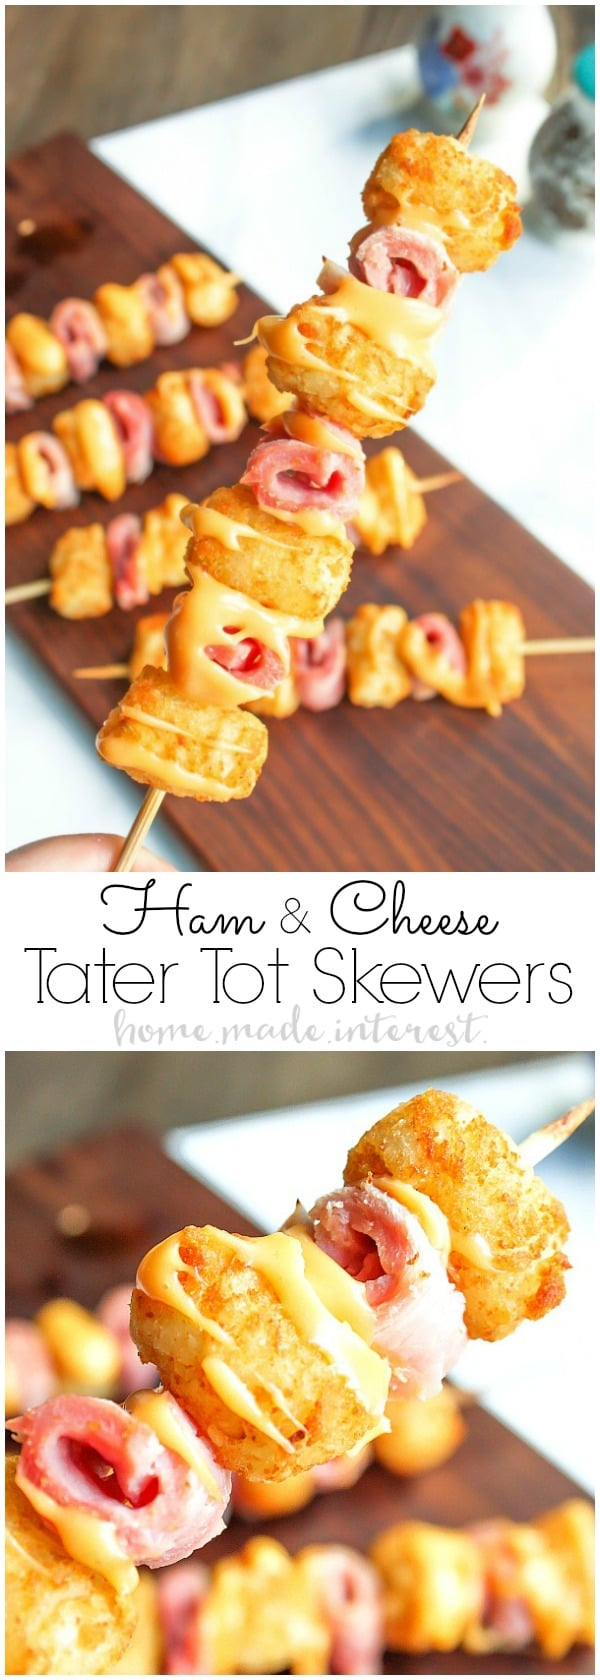 Ham and Cheese Tater Tot Skewers   If you are looking for a simple but totally awesome Game Day appetizer this game day recipe is it. Ham and Cheese Tater Tot Skewers are an easy appetizer recipe with layers of ham and tater tots skewered together and drizzled with creamy american cheese. This is going to be perfect food for your next super bowl party or football party!